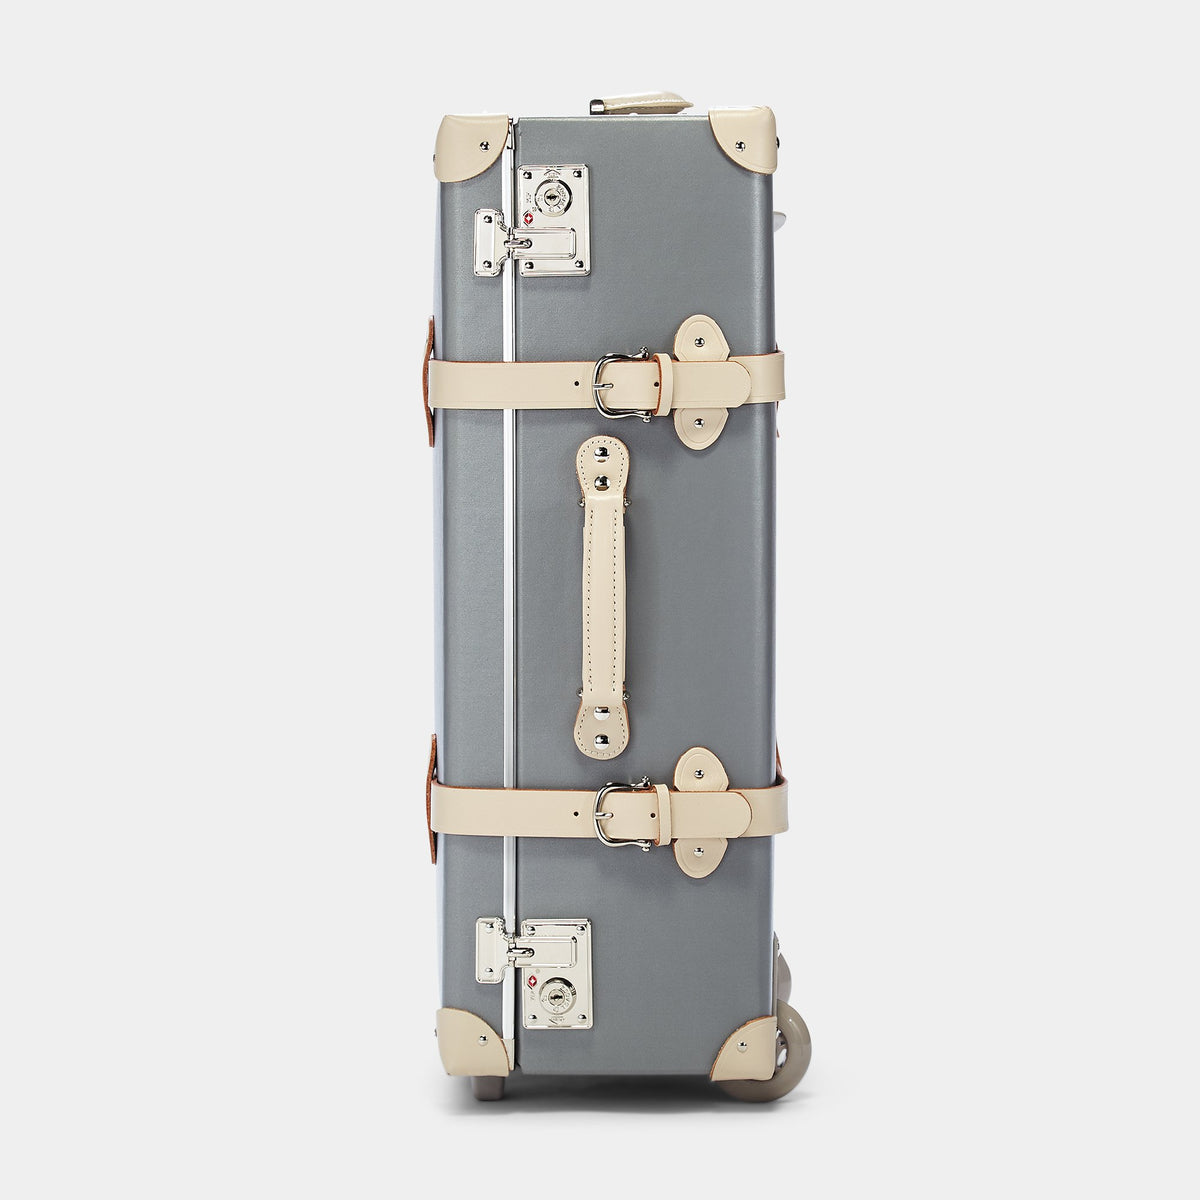 The Botanist Stowaway in Grey - Vintage-Inspired Luggage - Exterior side